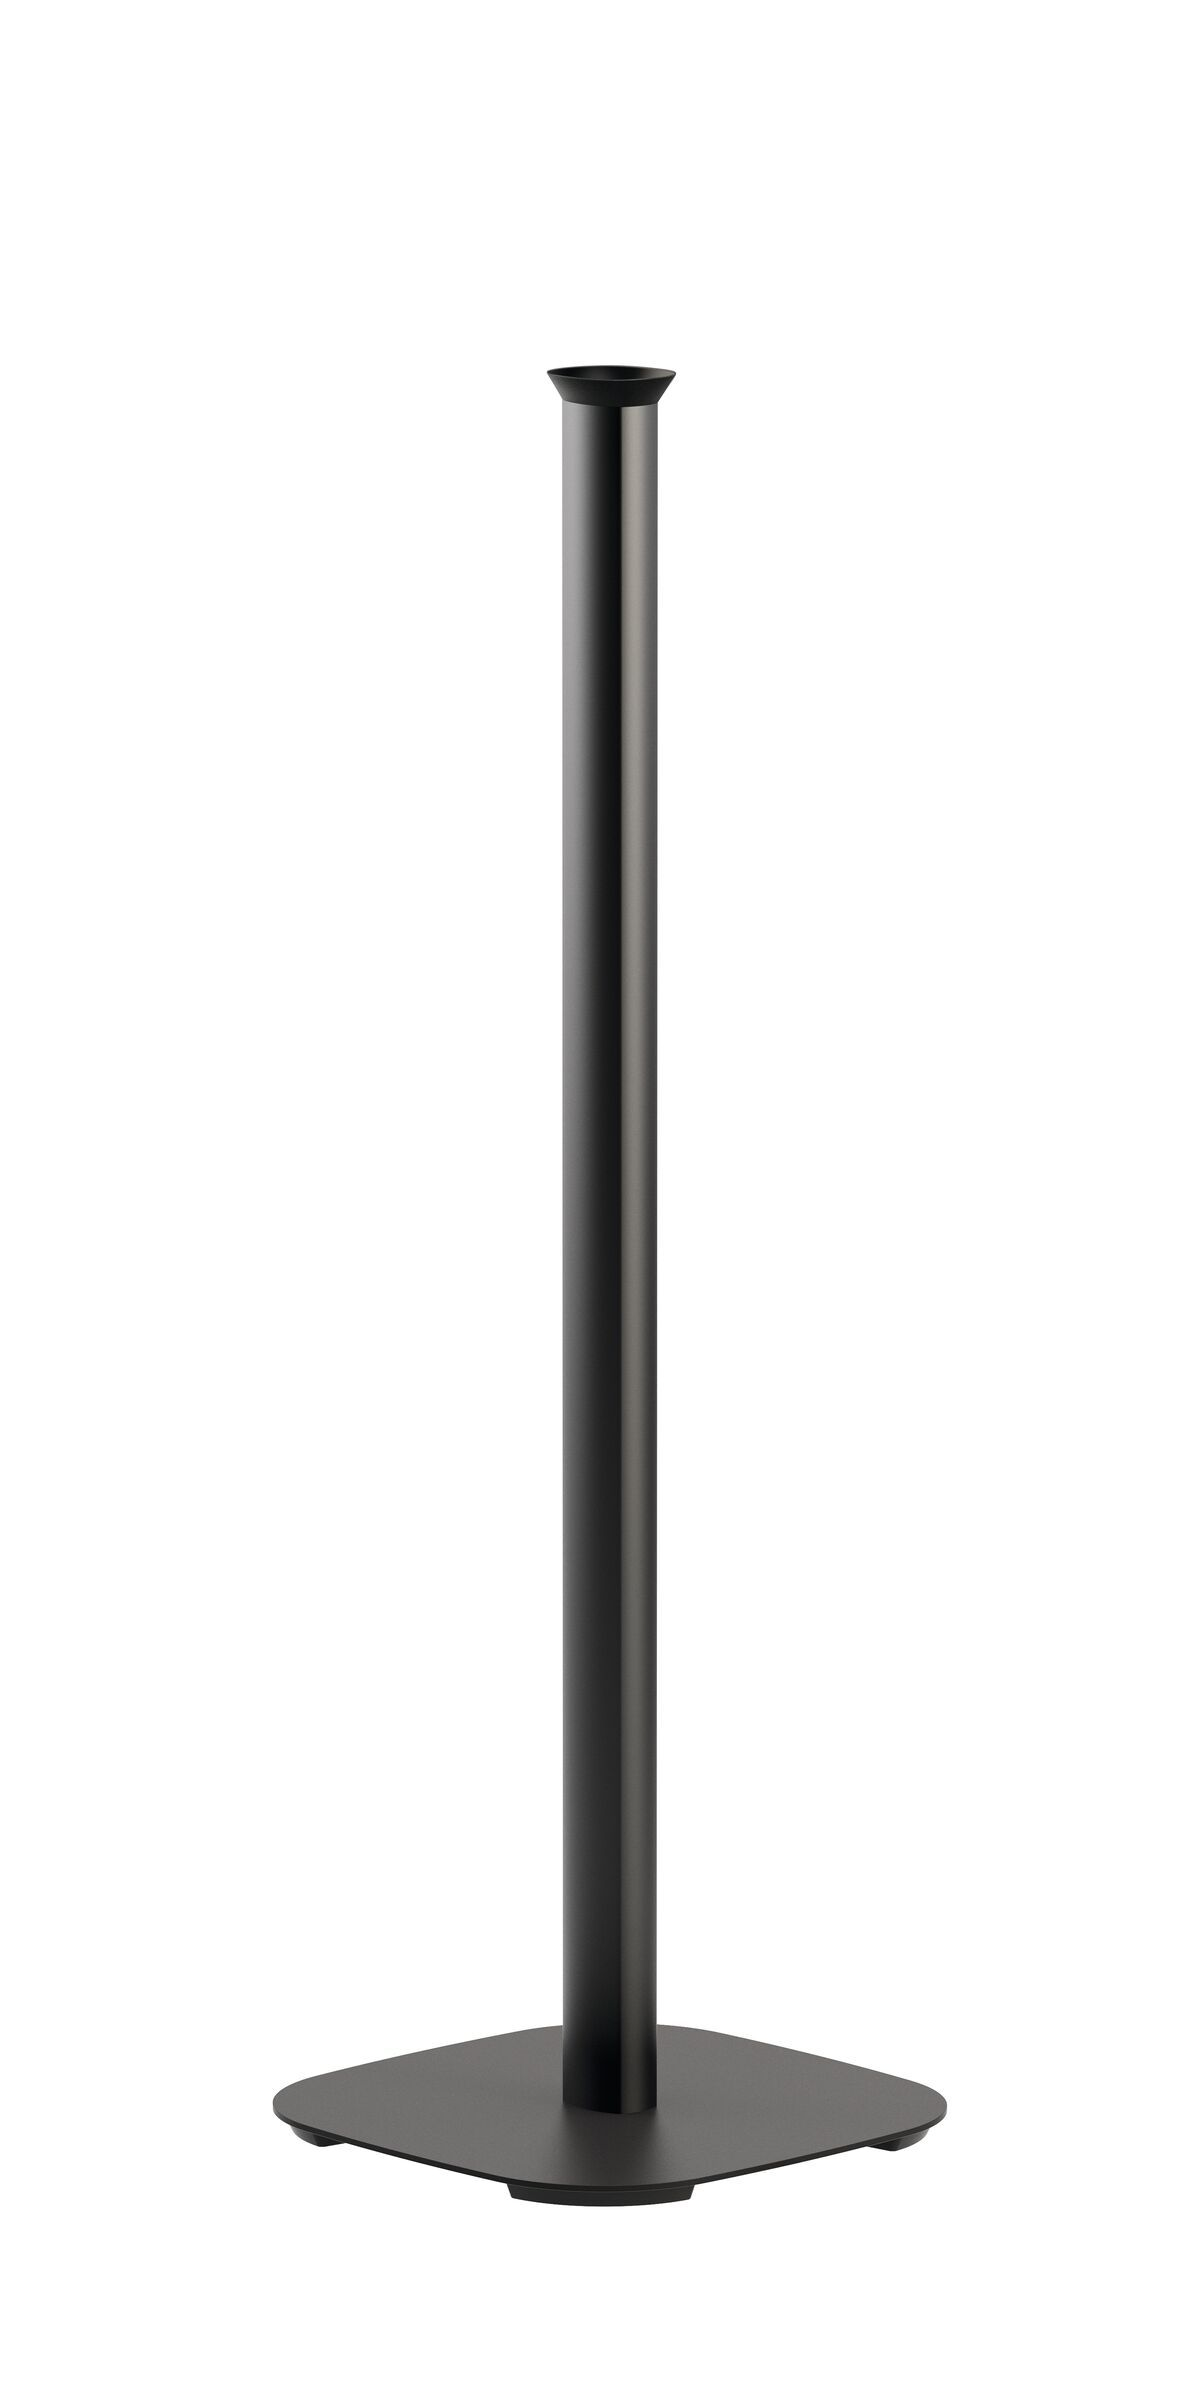 Vogel's SOUND 6301 Speaker Stand for Bowers & Wilkins Formation Flex - Product